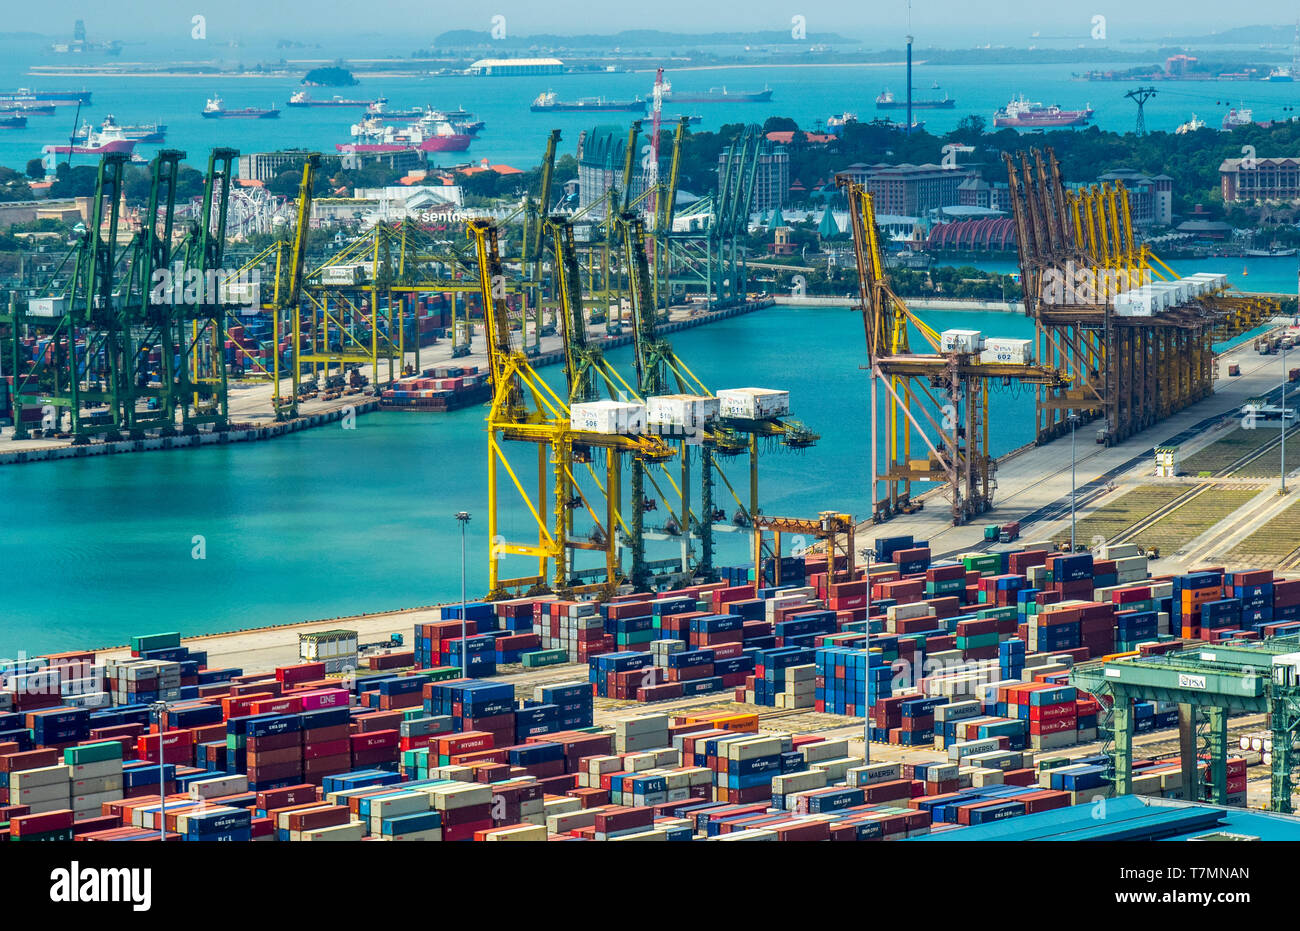 cranes-and-shipping-containers-at-port-of-singapore-at-keppel-harbour-singapore-T7MNAN.jpg